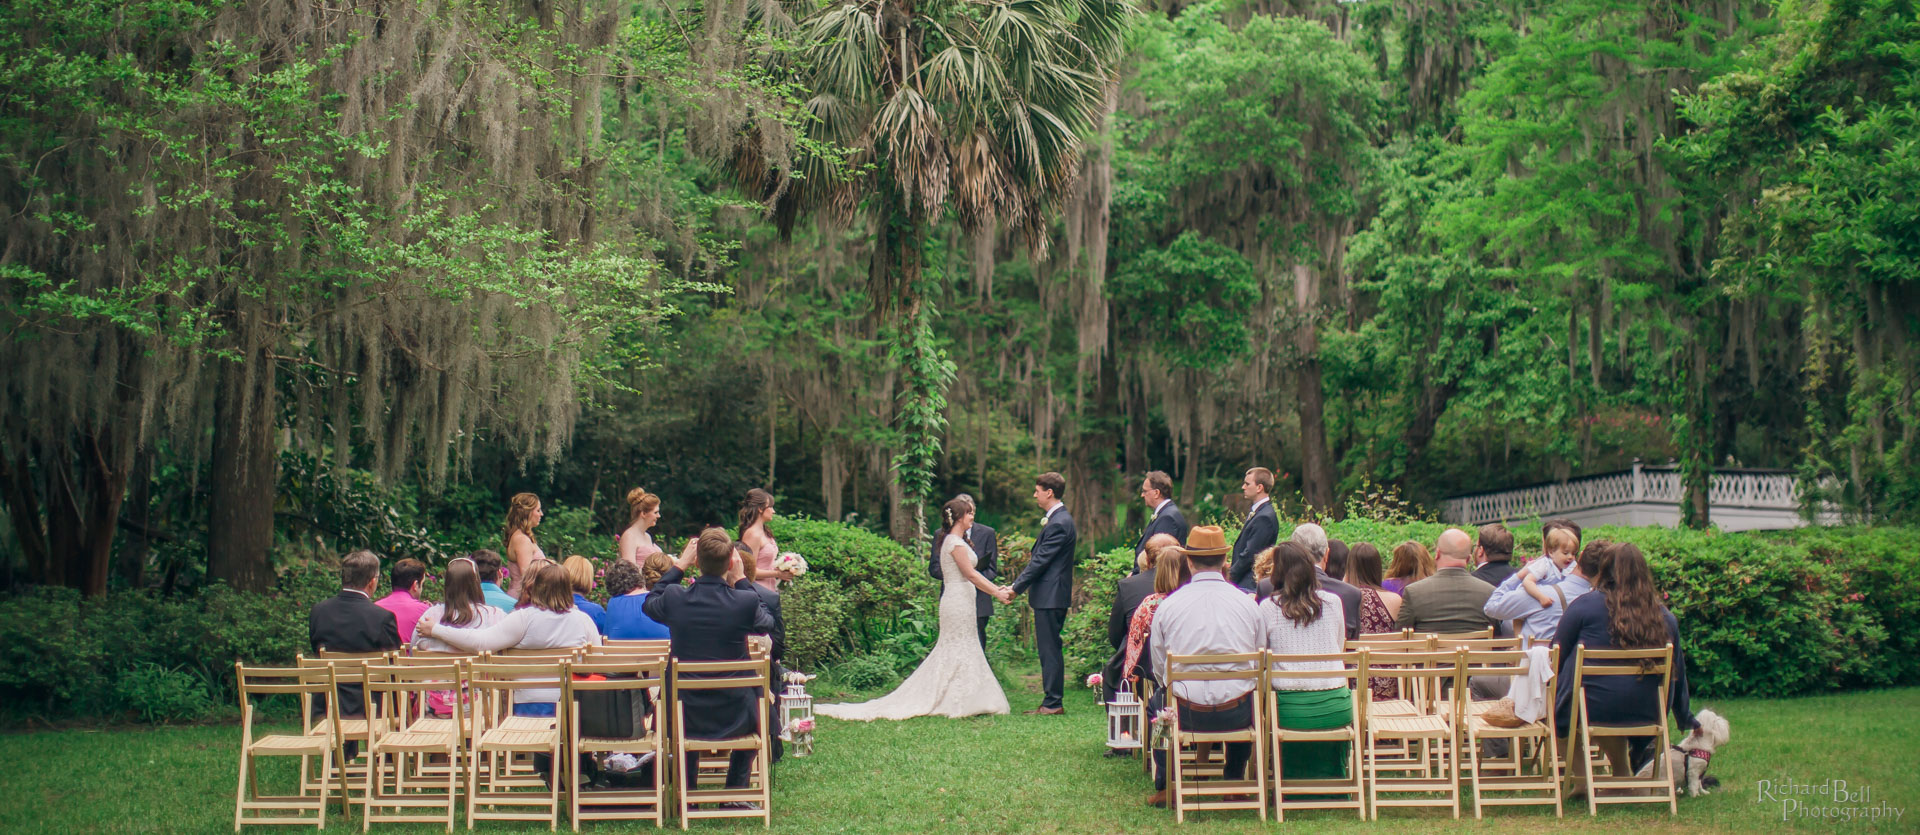 Bride and Groom Ceremony at Magnolia